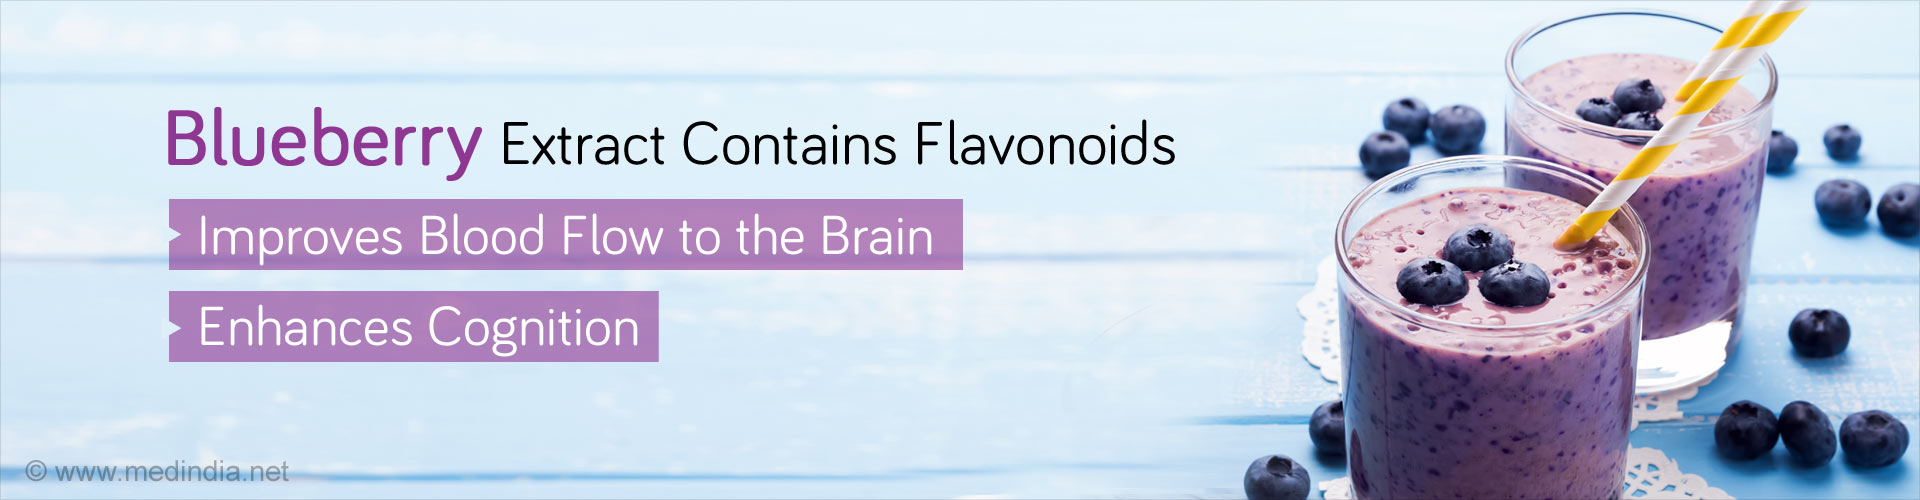 Blueberry extract contains flavonoids